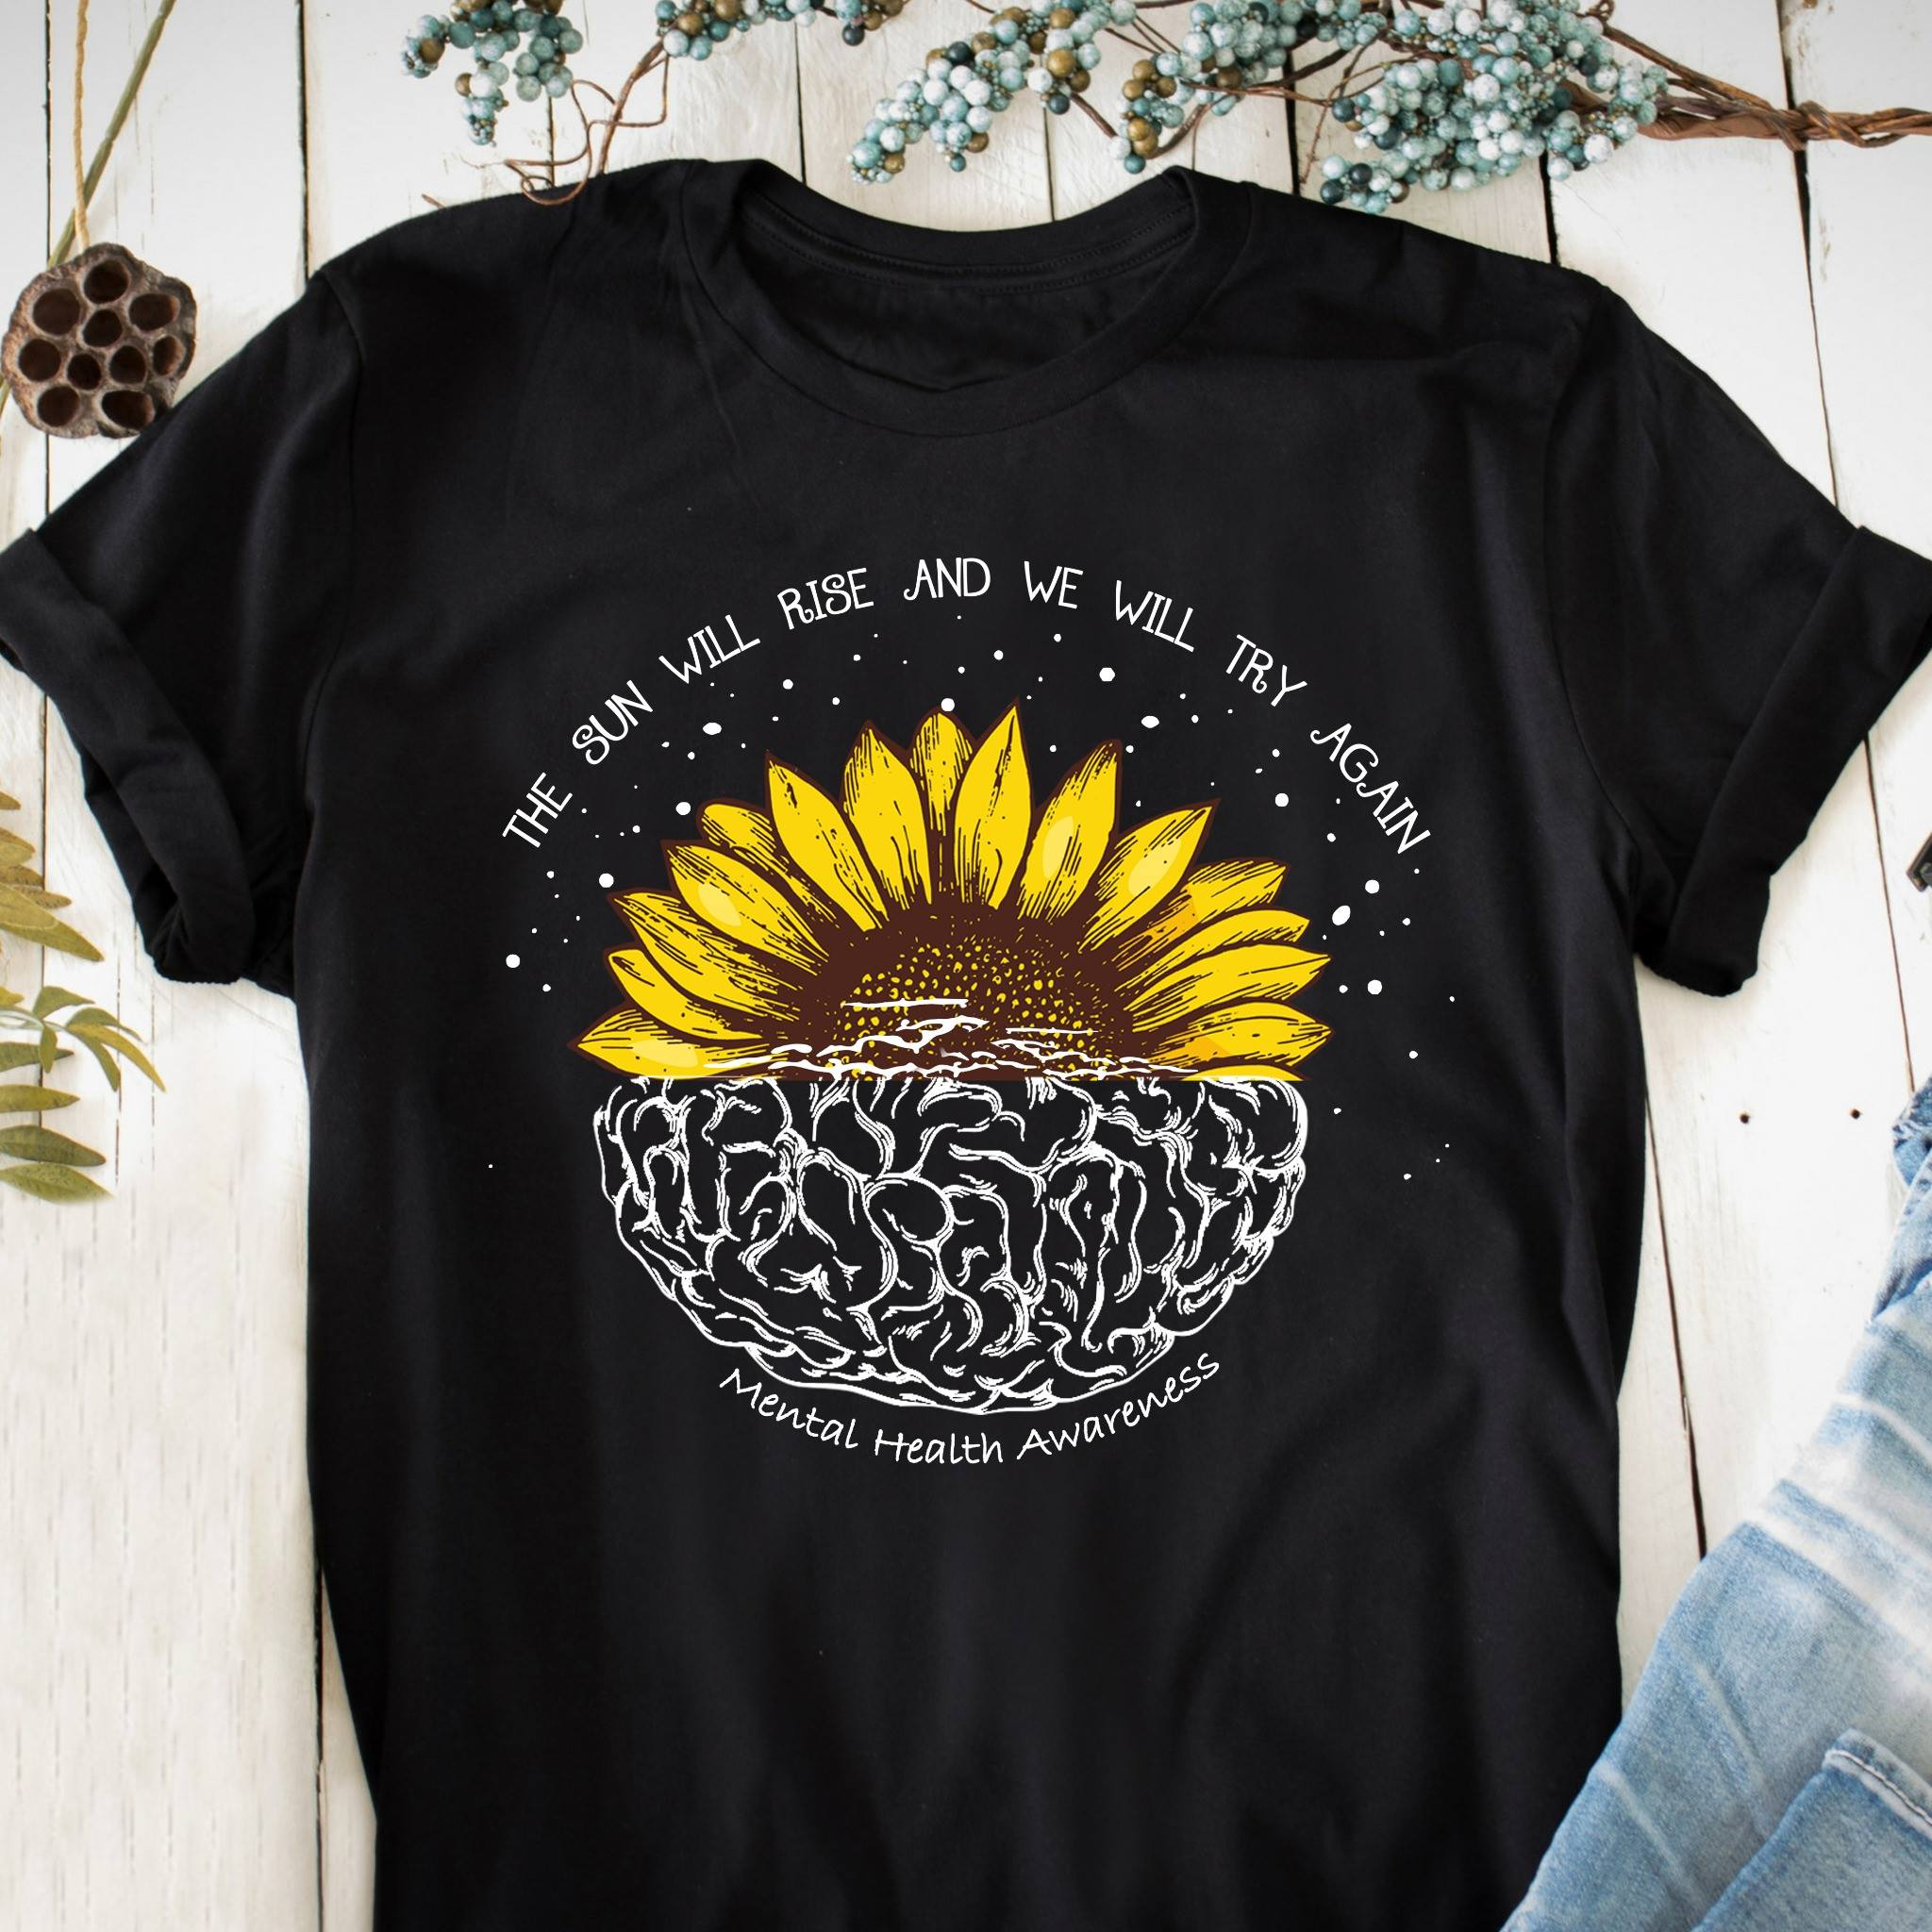 Sunflower Mental Health Awareness Shirt The Sun Will Rise And We Will Try Again